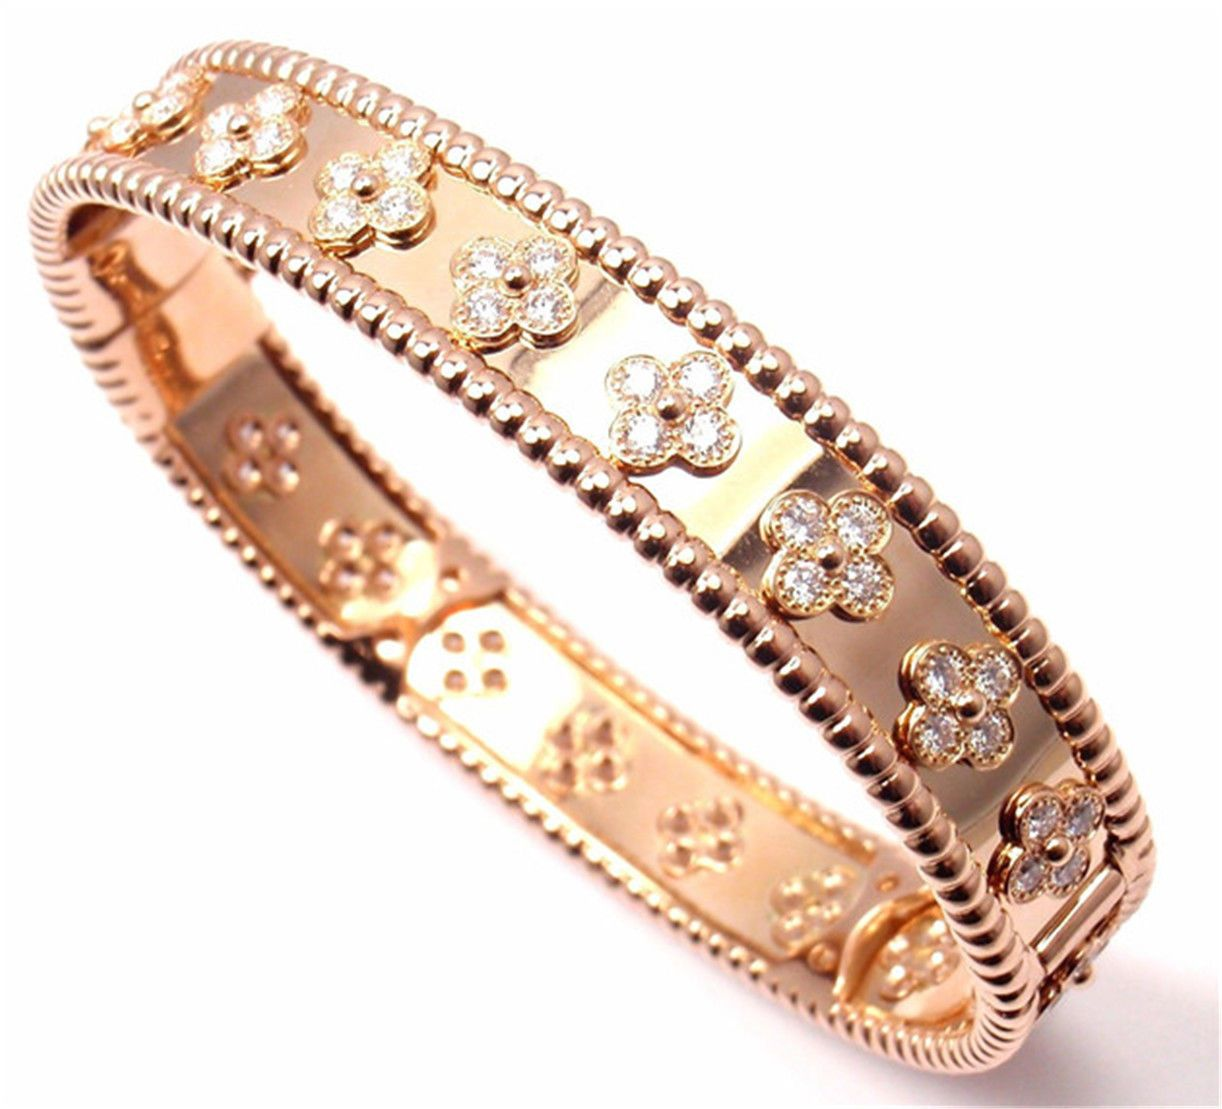 Van cleef u arpels k rose gold perlee diamond clover bangle